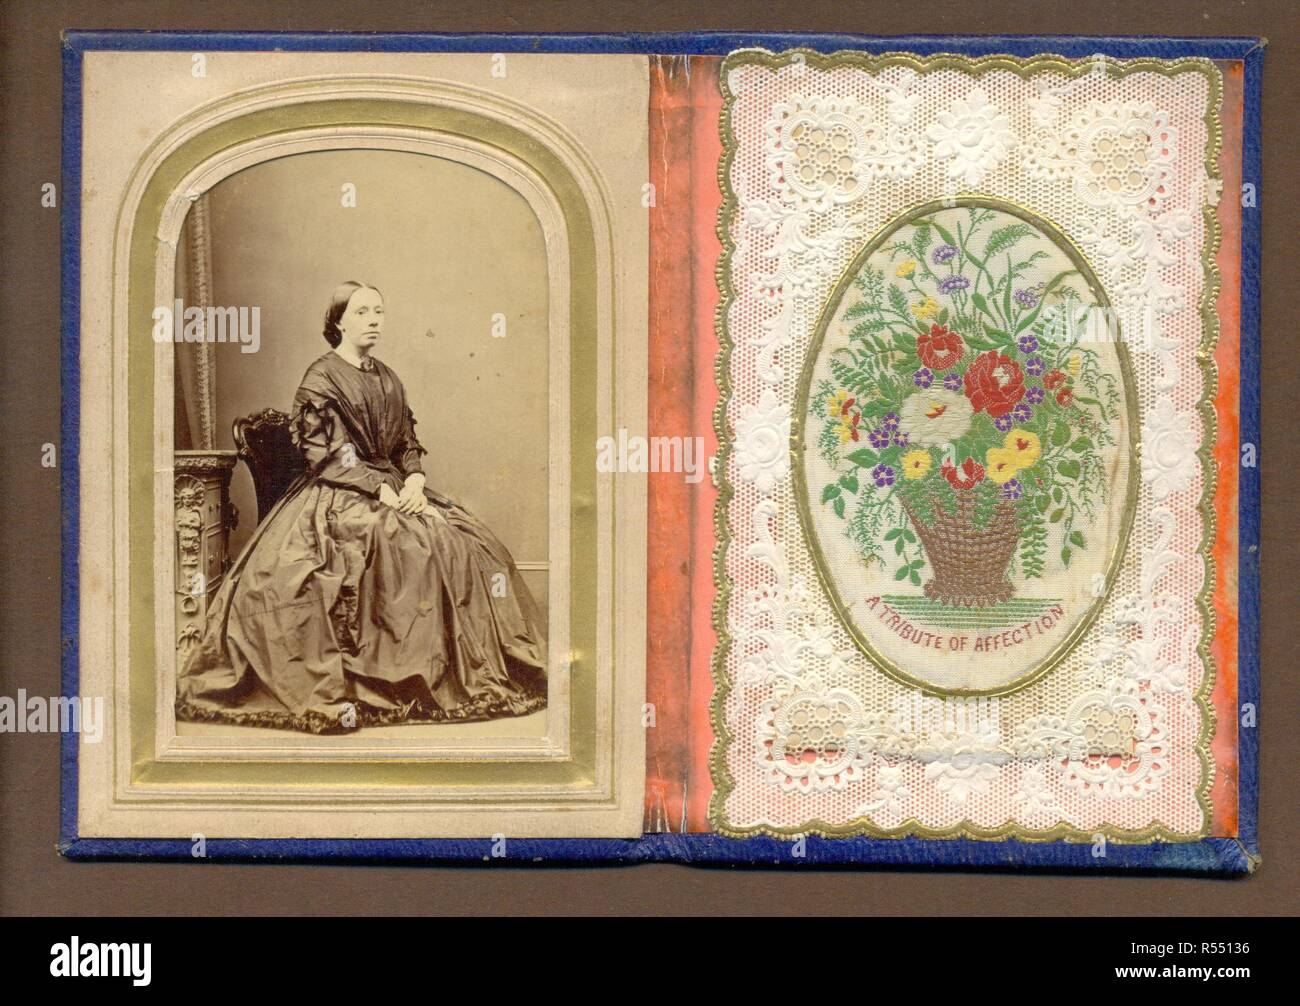 Carte de visite portrait in case with paper lace valentine with woven silk flowers onlay - Stock Image